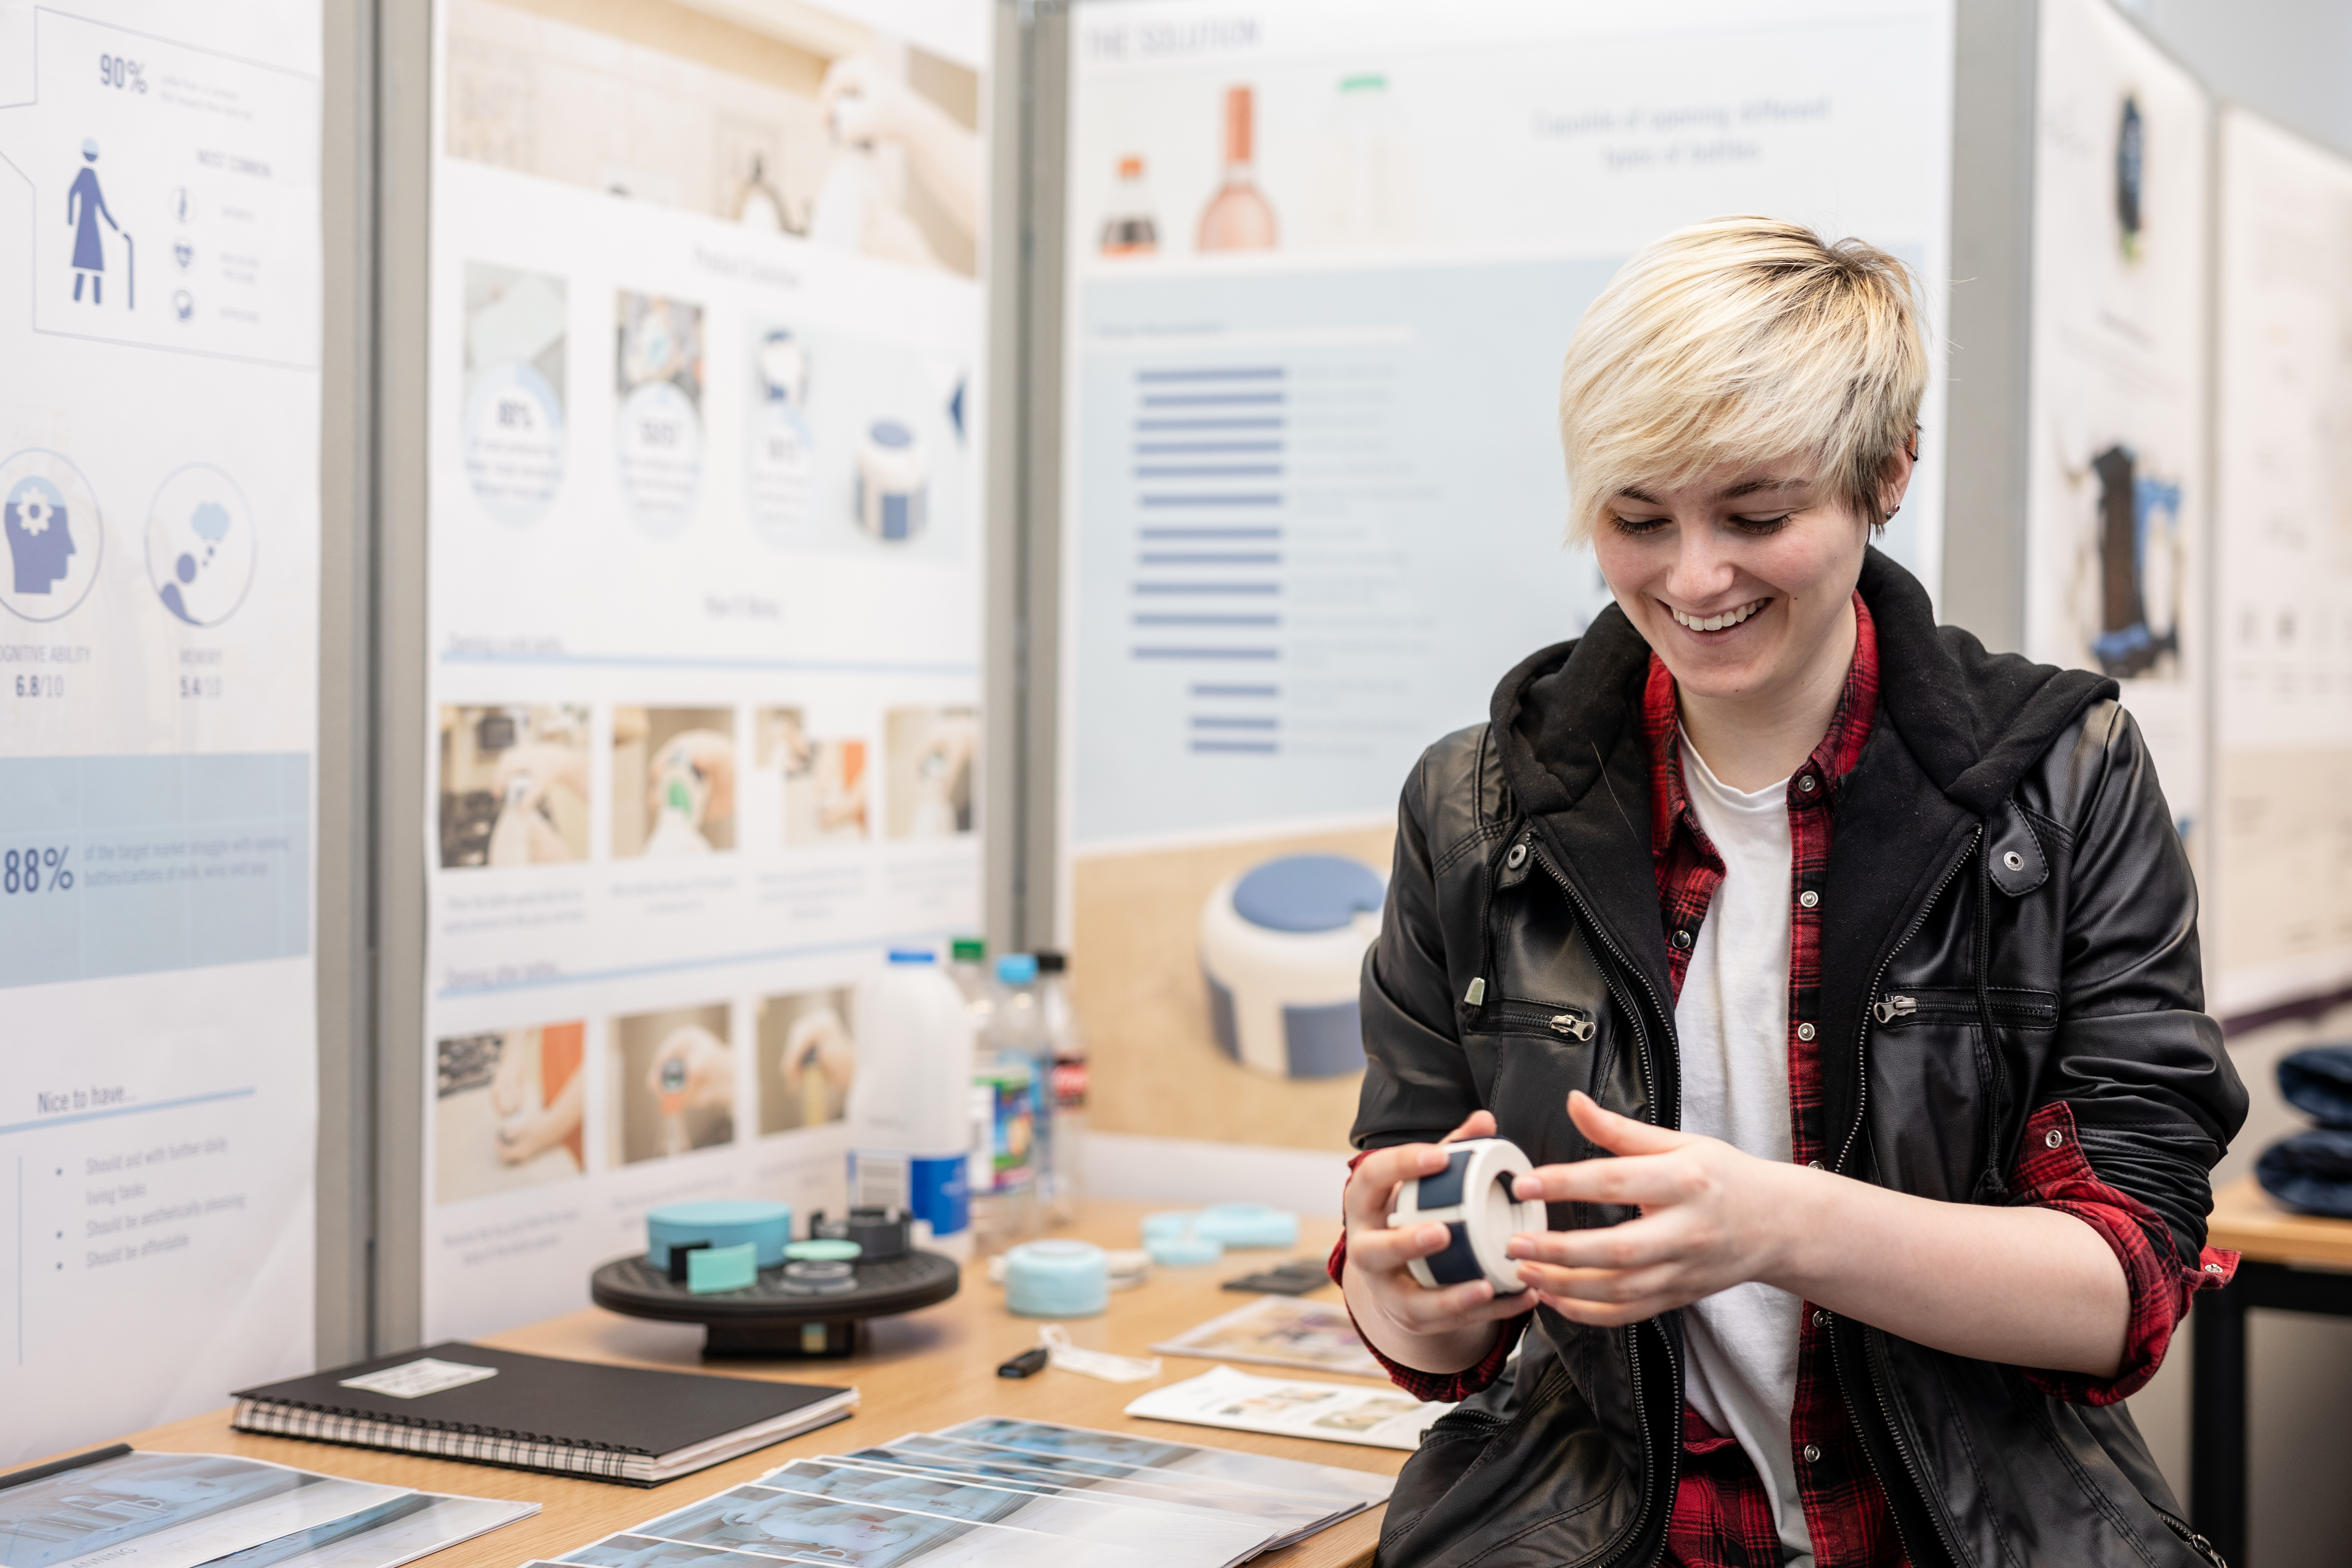 Product design student at the product design showcase with her project